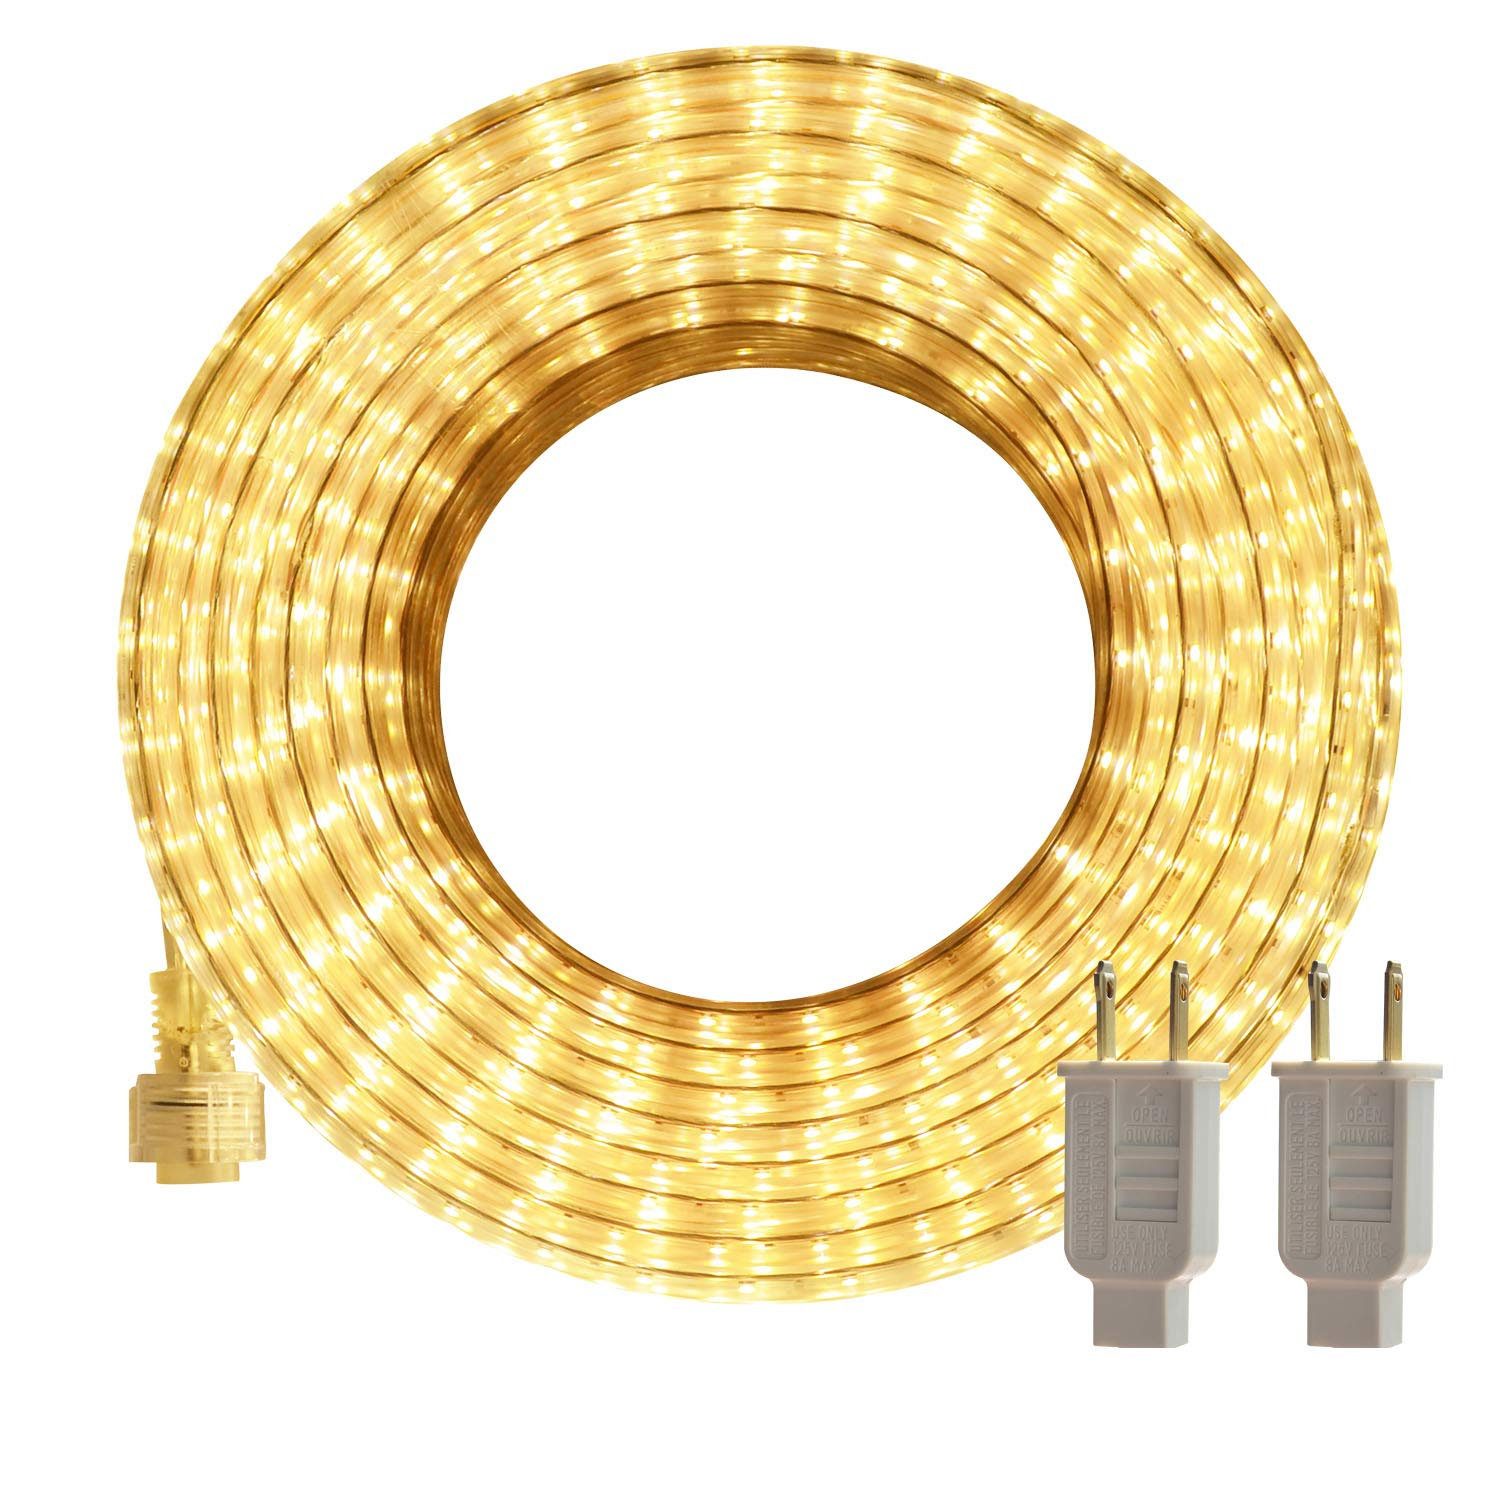 LED Rope Lights, 50ft Flat Flexible Light Strip, 3000K Warm White, Water Resistant for Both Indoor/Outdoor Use, Inter-Connectable, UL Certified, Decorative Lighting for Any Location.